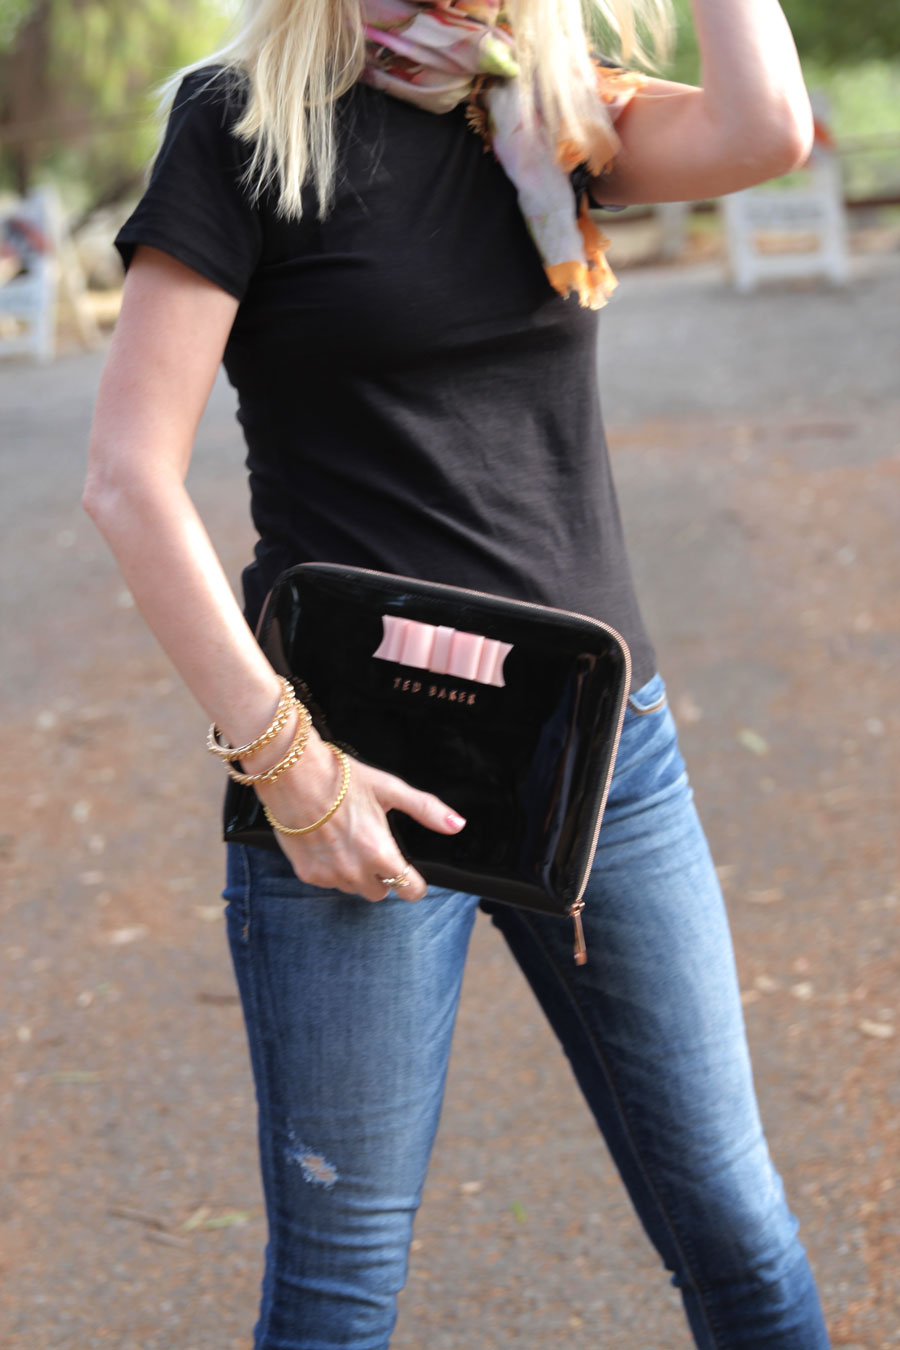 currently crushing, ted baker clutch, ted baker scarf, dittos jeans, spy optic sunglasses